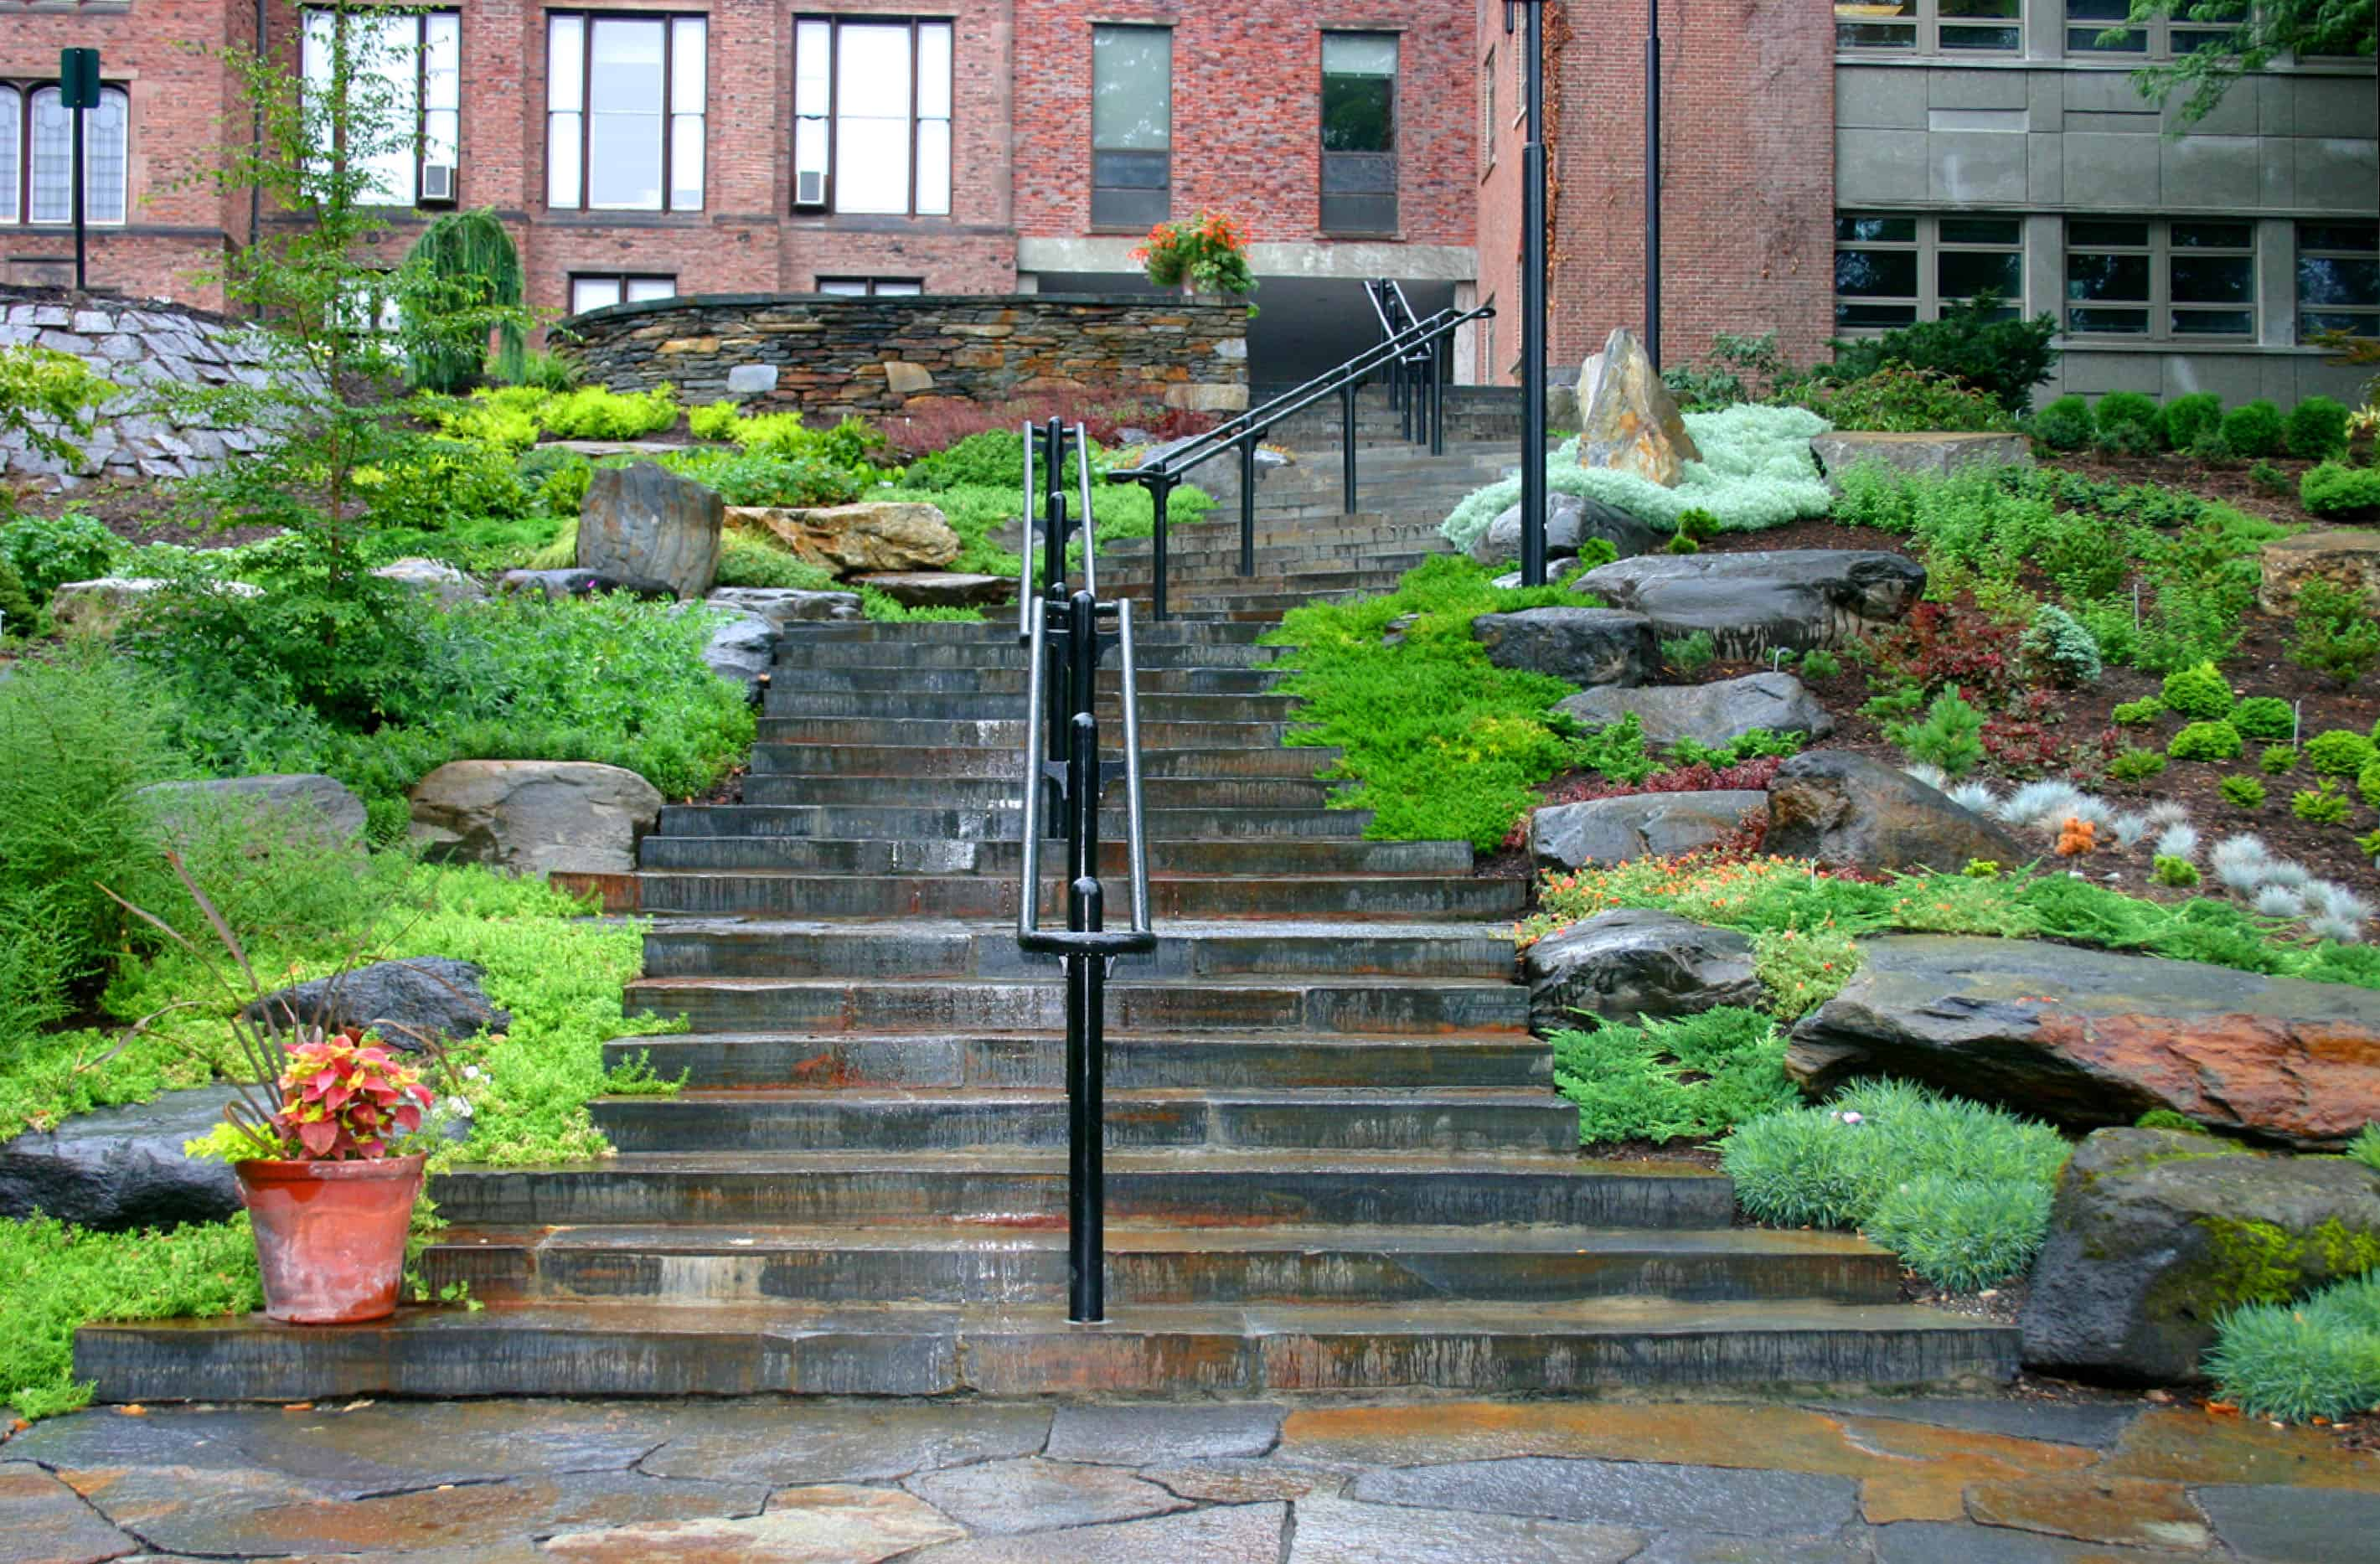 Julie moir messervy design studio heckel garden steps for Garden design university